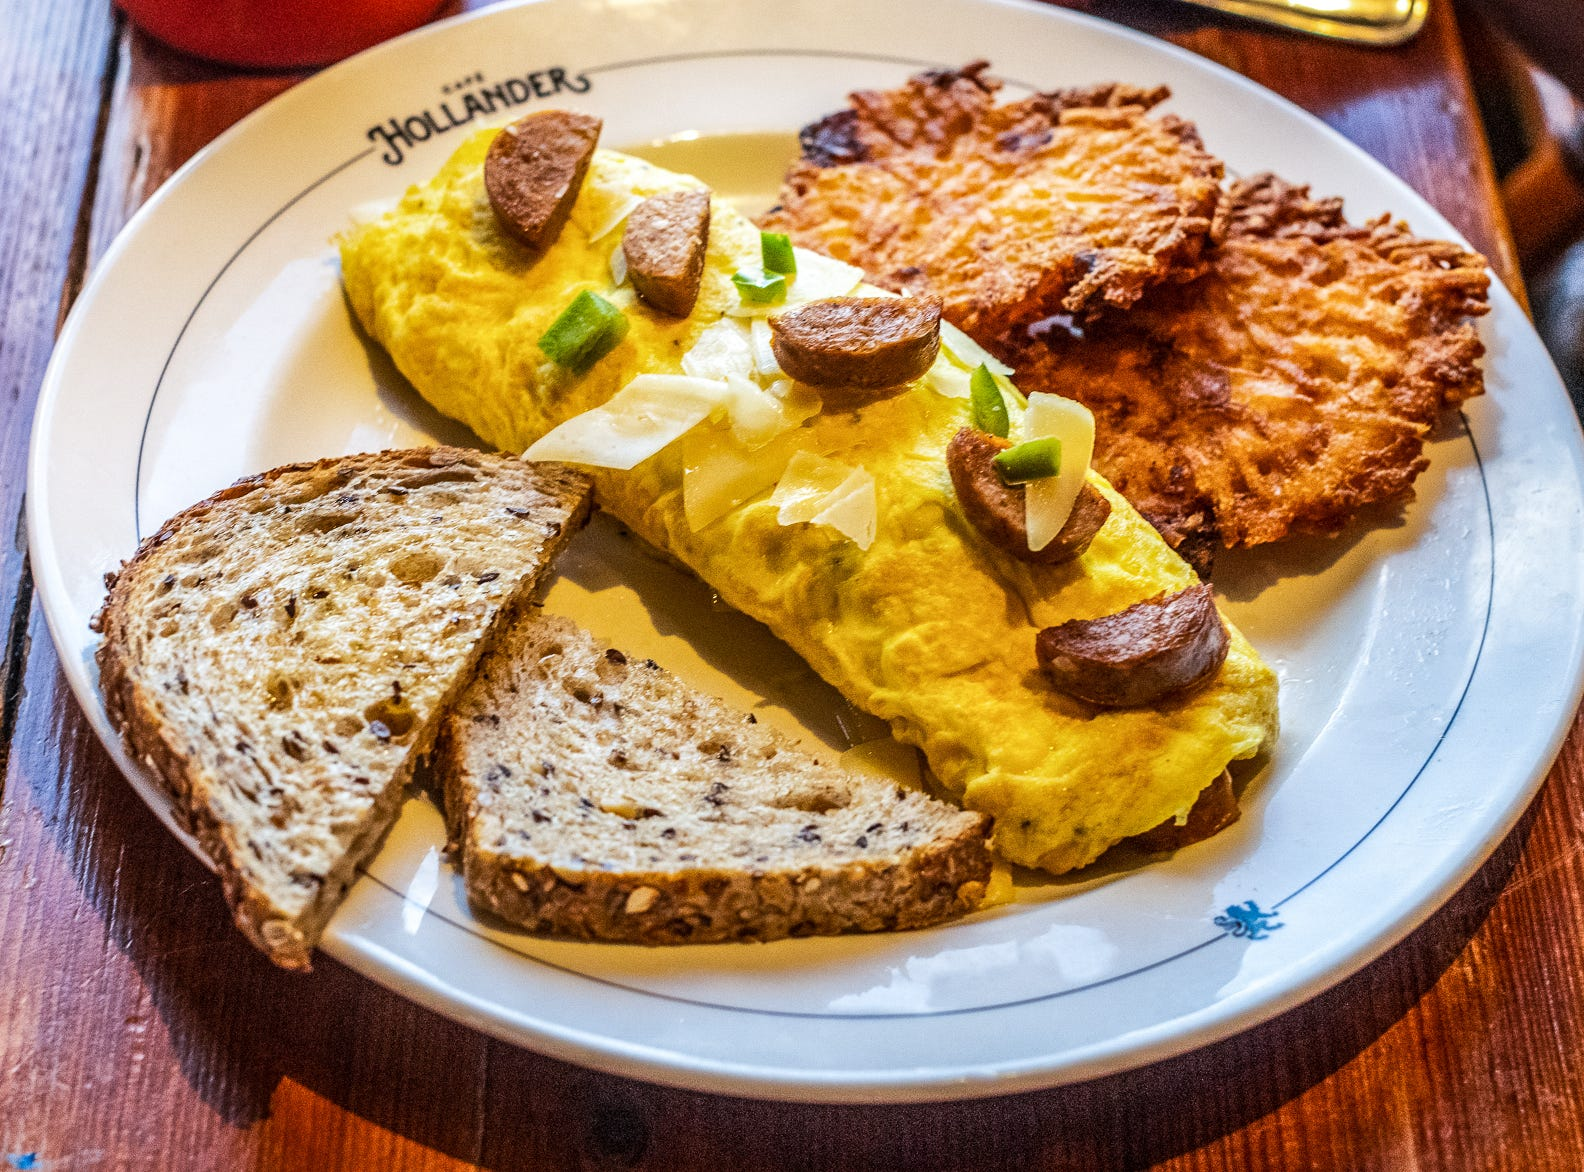 The Sausage & Three Cheese Omelette includes Hungarian sausage, jalapenos and asiago, romano and parmesan cheeses.